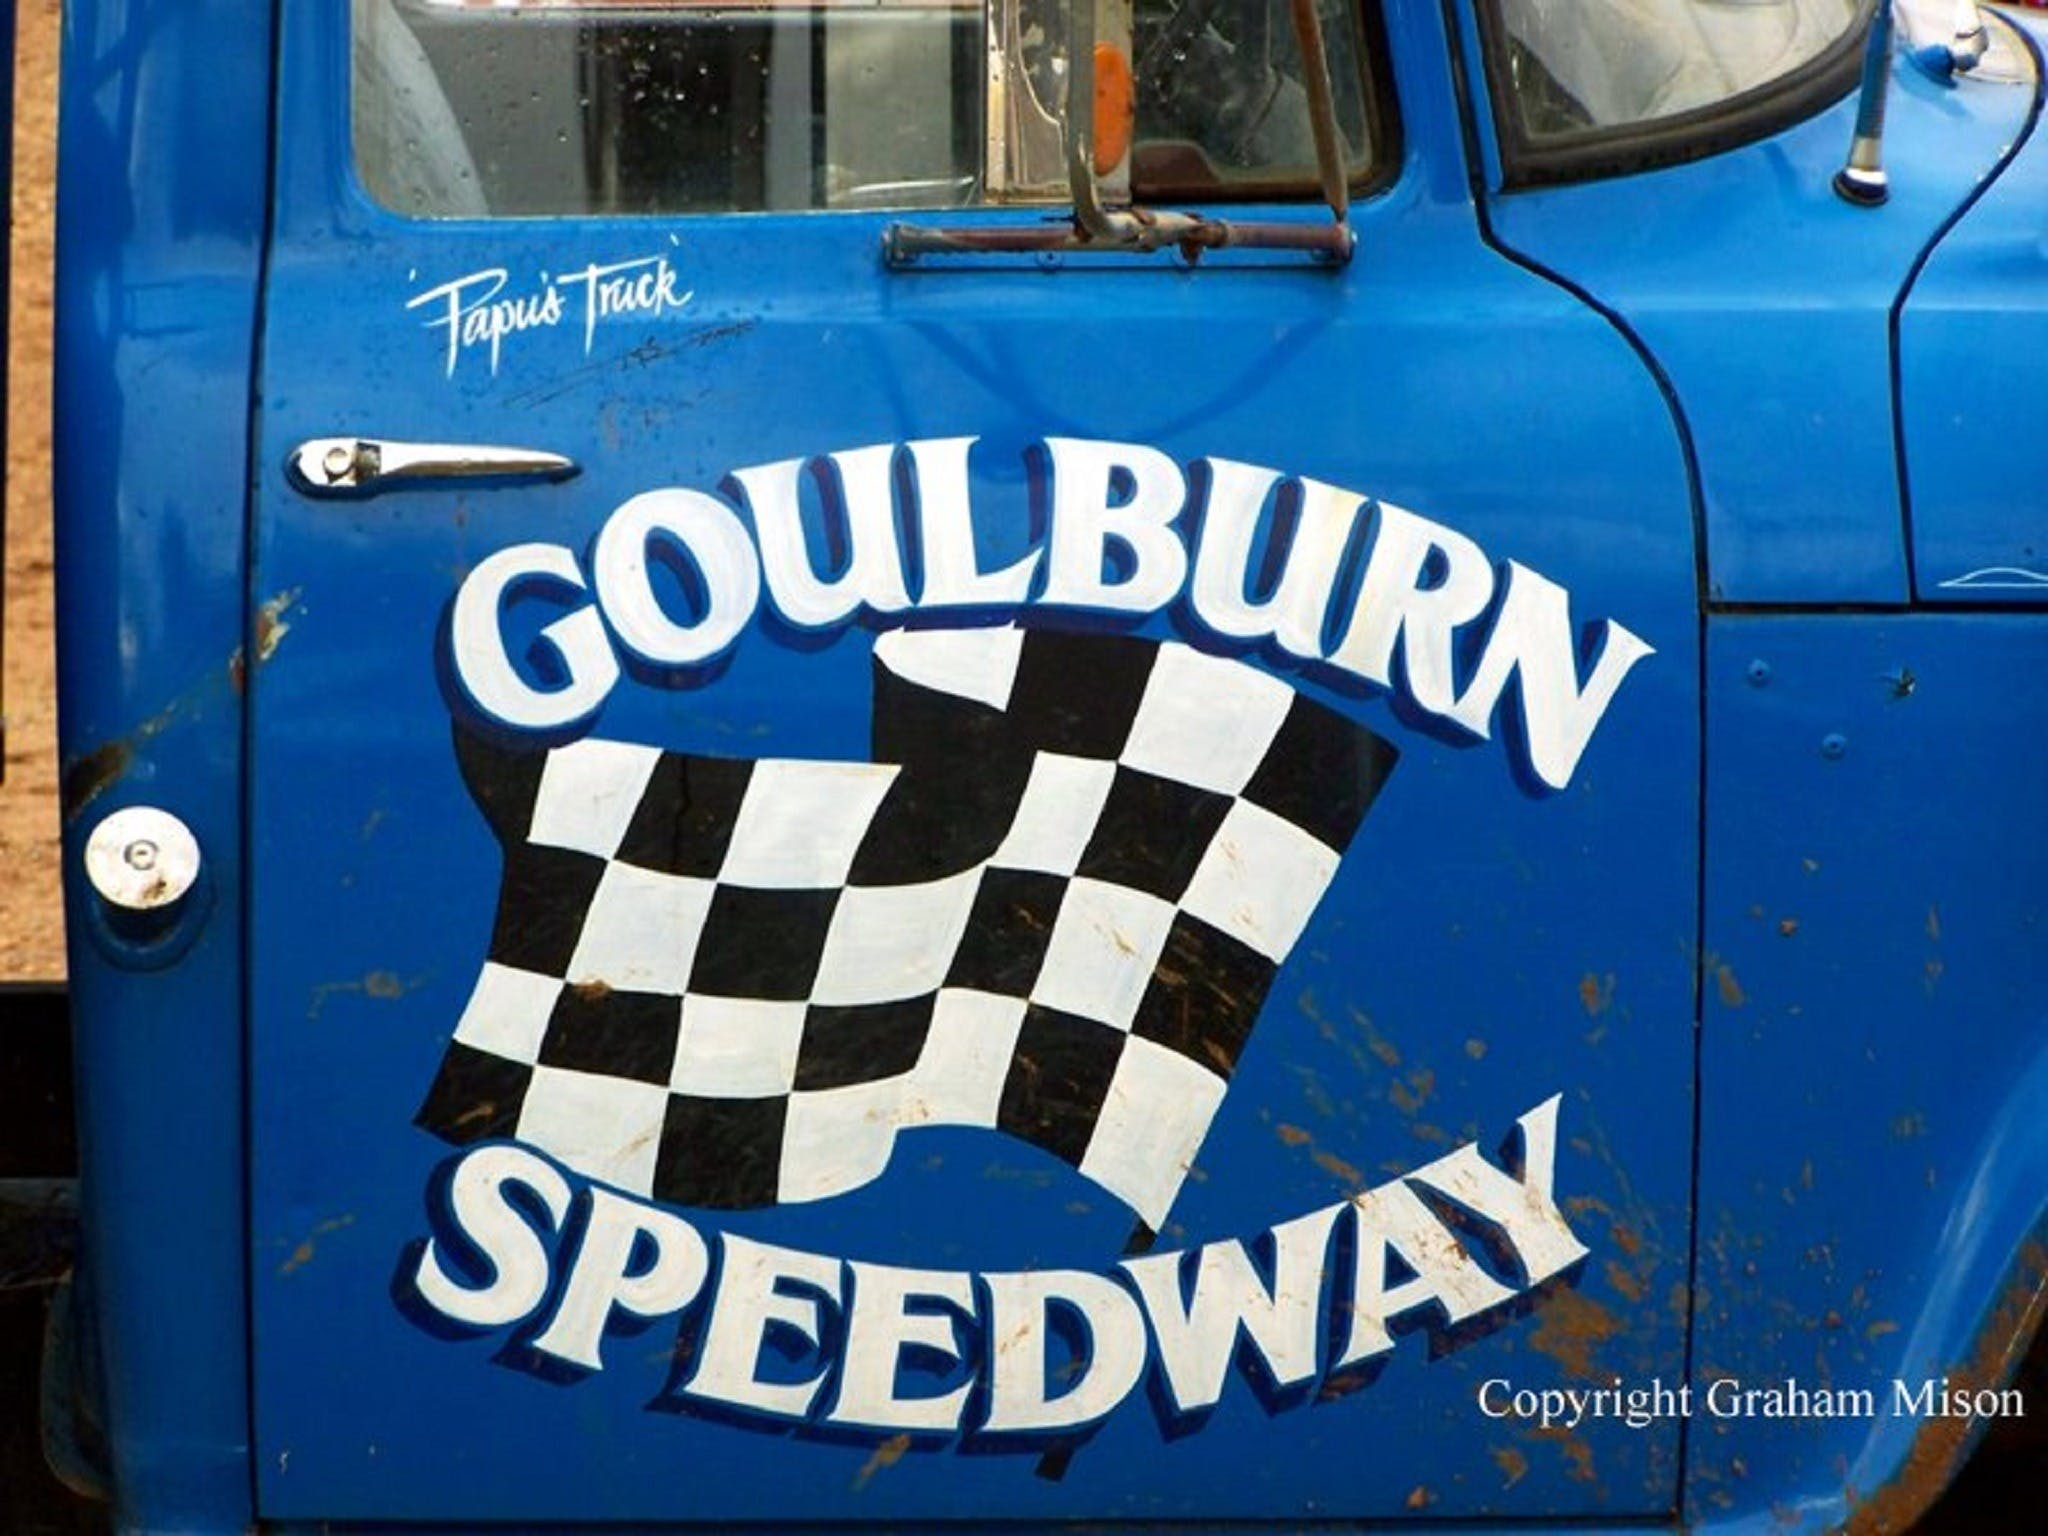 50 years of racing at Goulburn Speedway - Accommodation Great Ocean Road